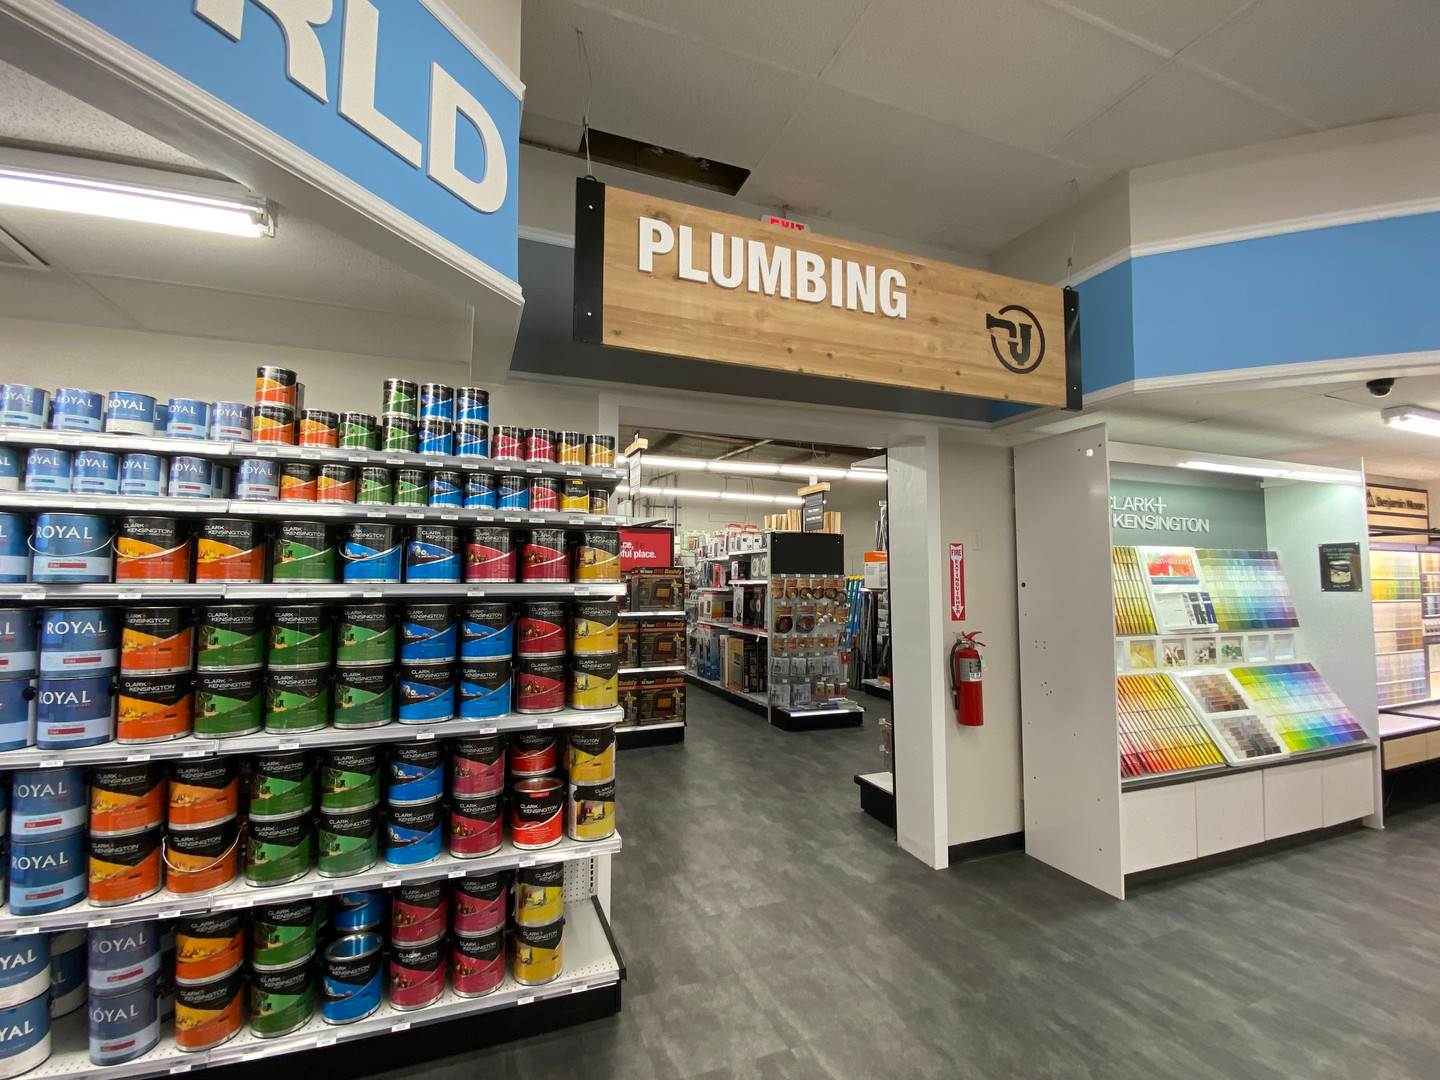 Painting and Plumbing Sections